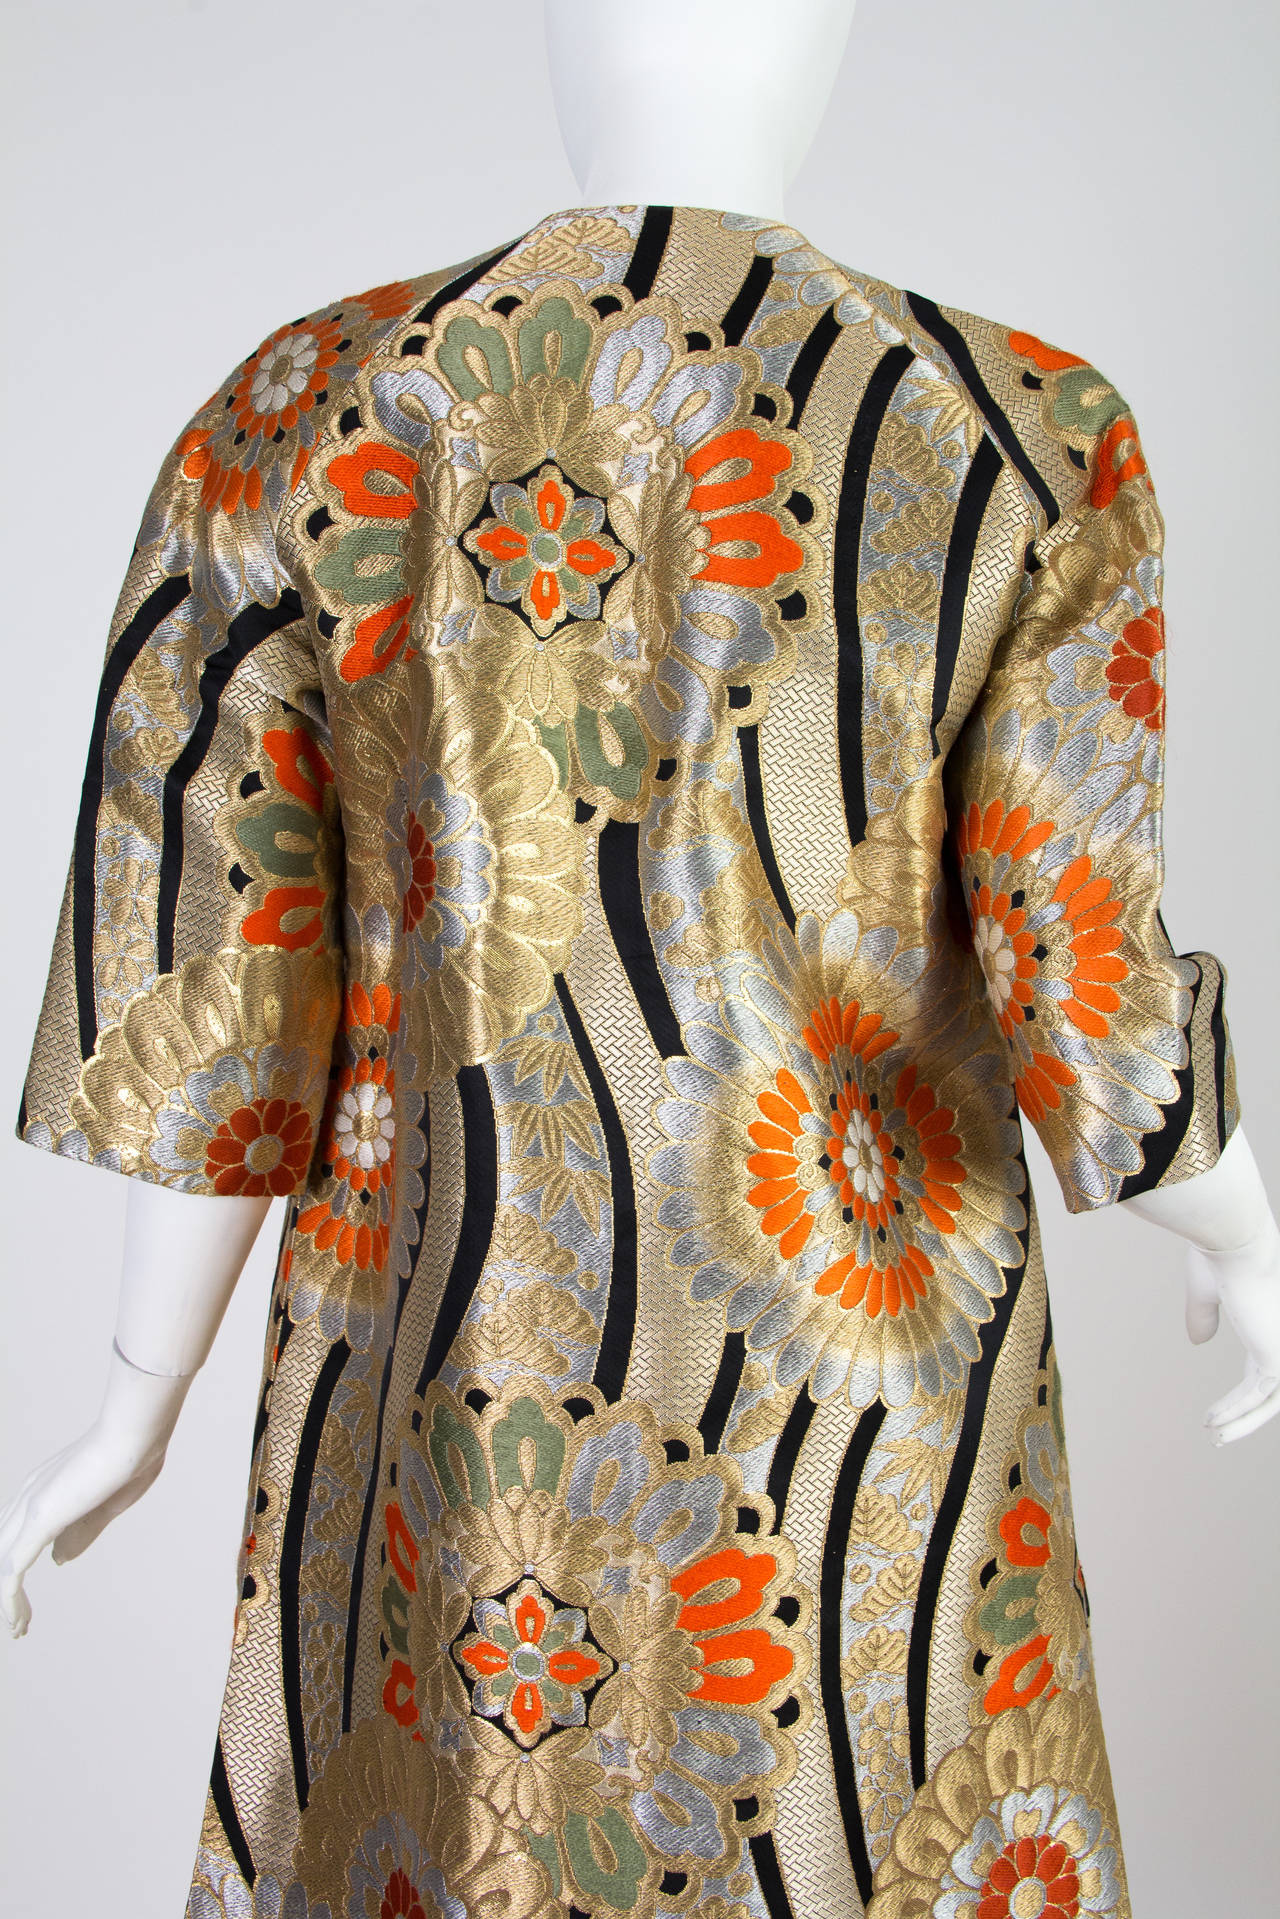 1960s Coat Made from Gold Shōwa Era Japanese Obi Fabric 7